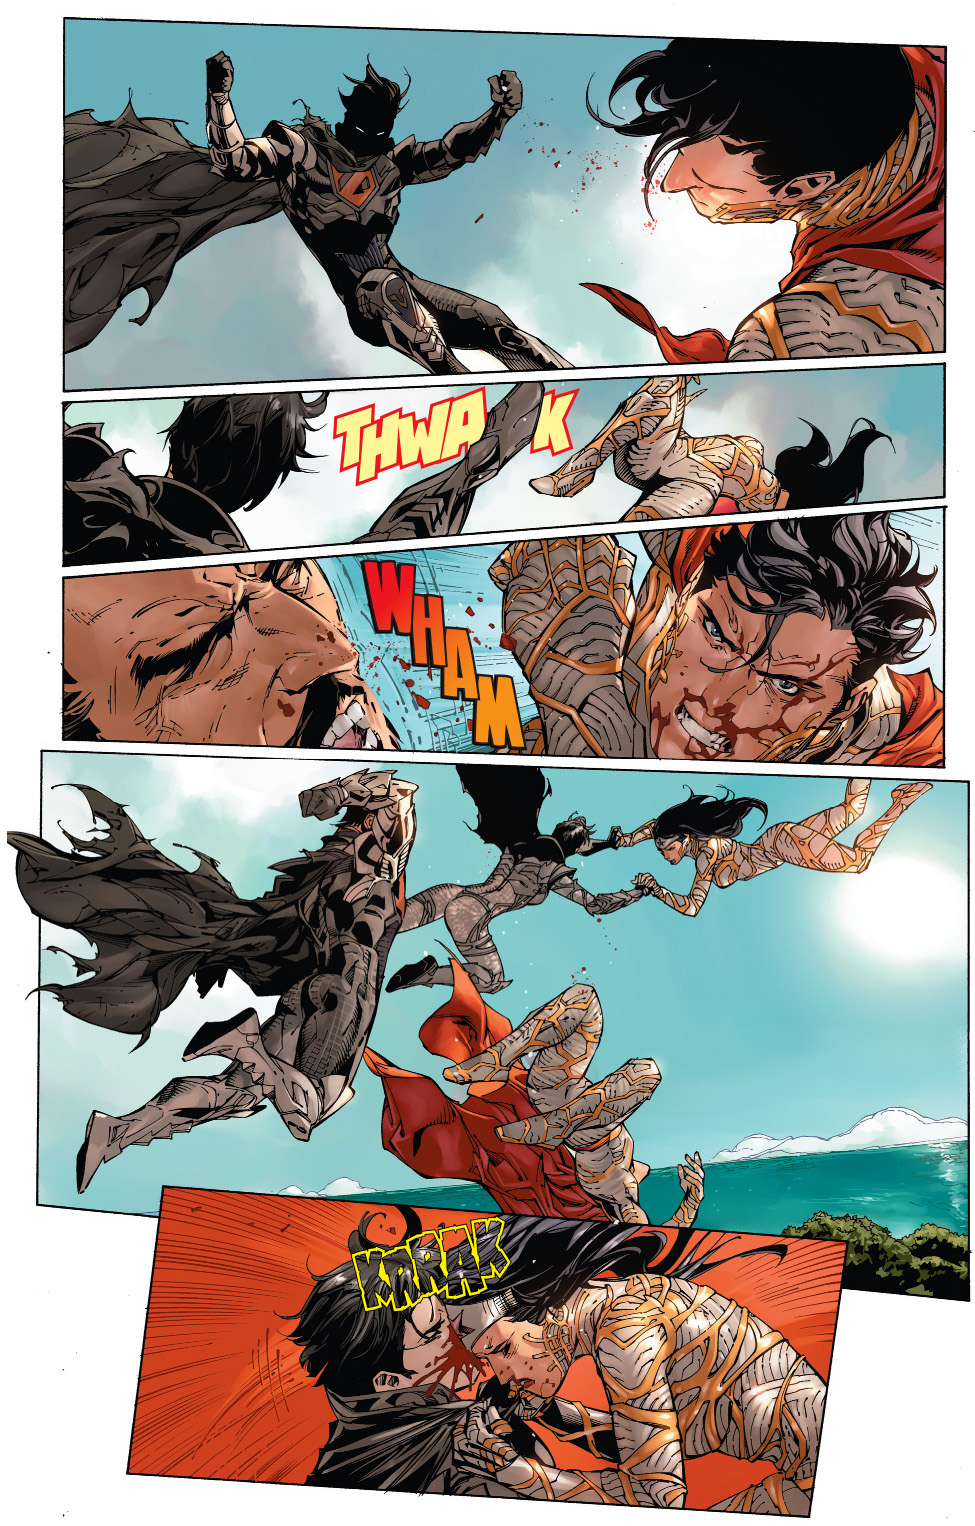 Superman And Wonder Woman Vs Zod And Faora  Comicnewbies-2795